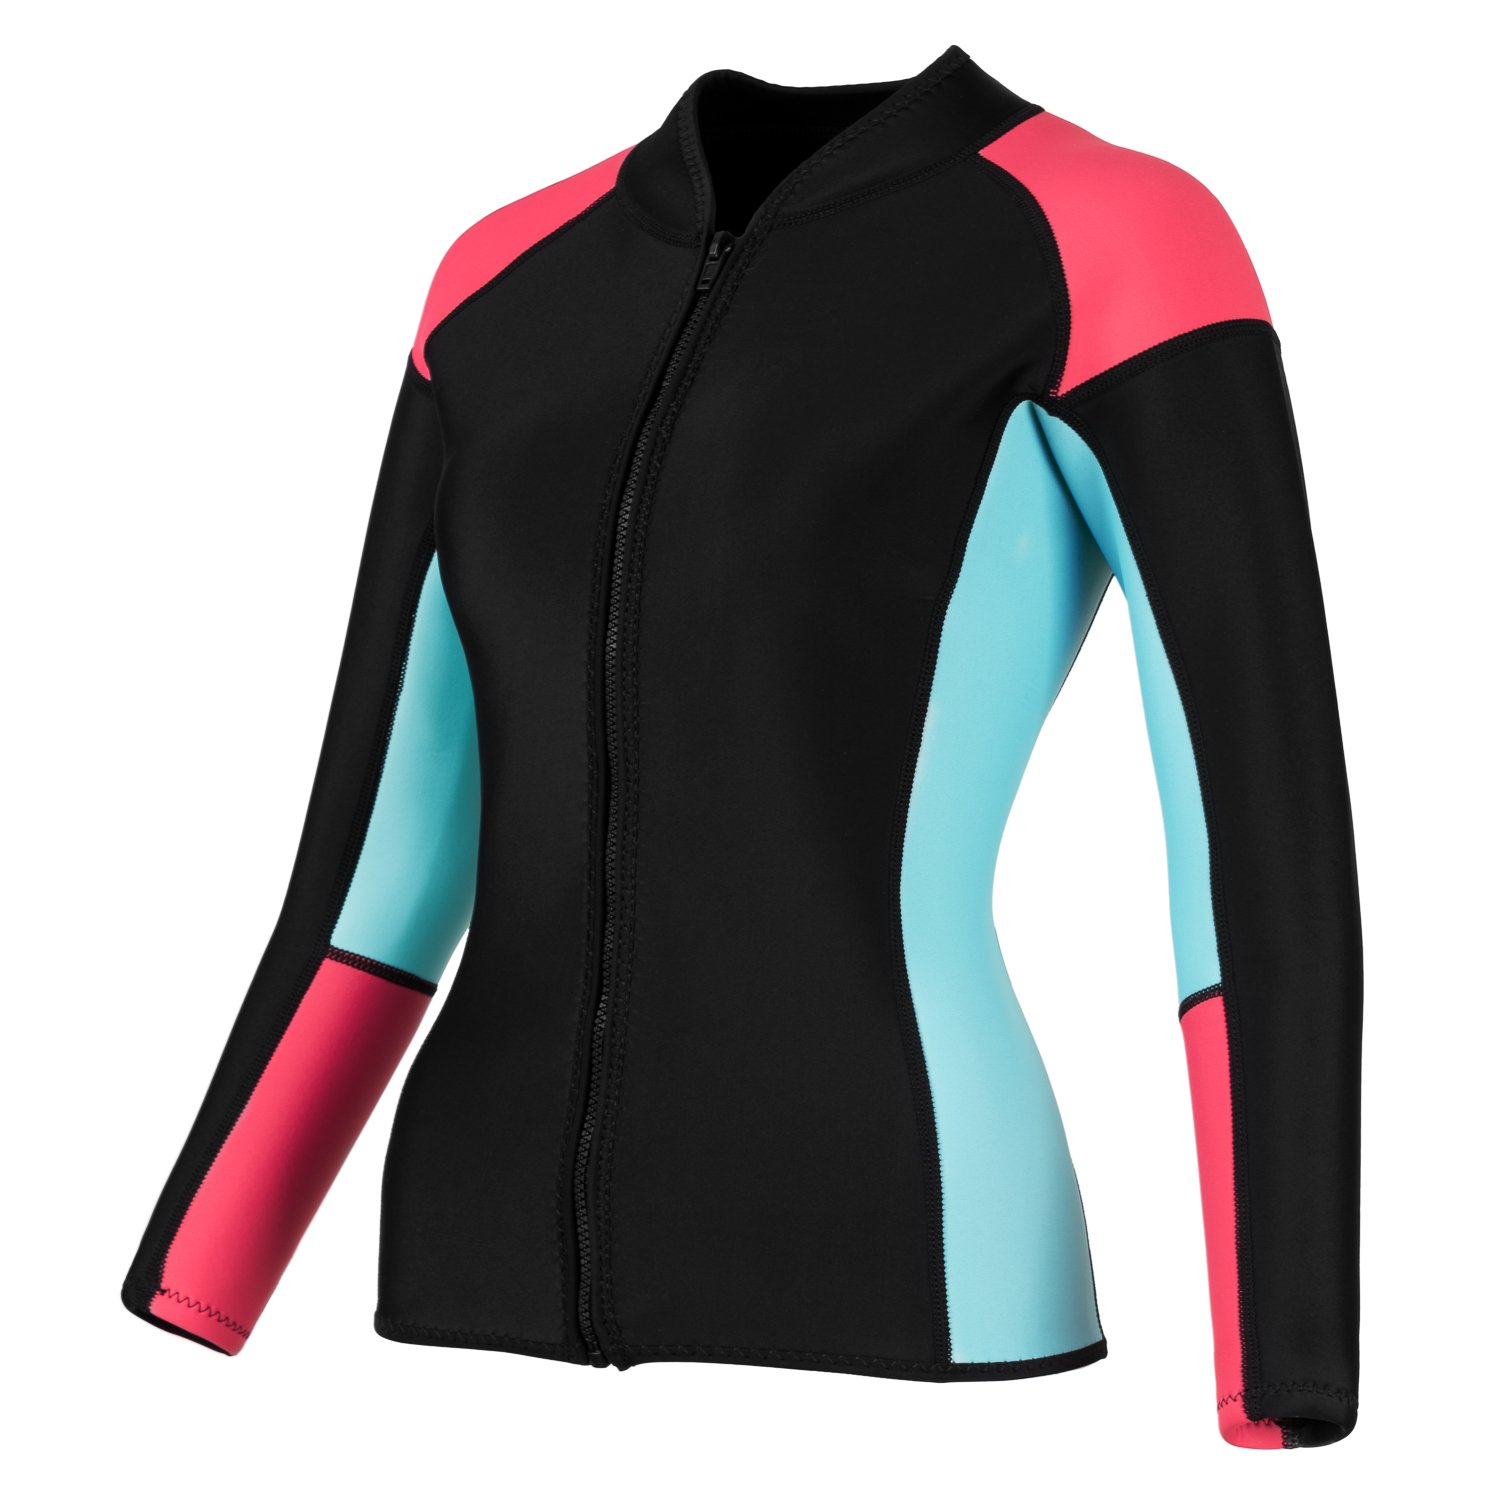 EYCE DIVE & SAIL Women's 3/2 mm Wetsuits Jacket Long Sleeve Neoprene Wetsuit Top (Coral/Blue, S = US 2)